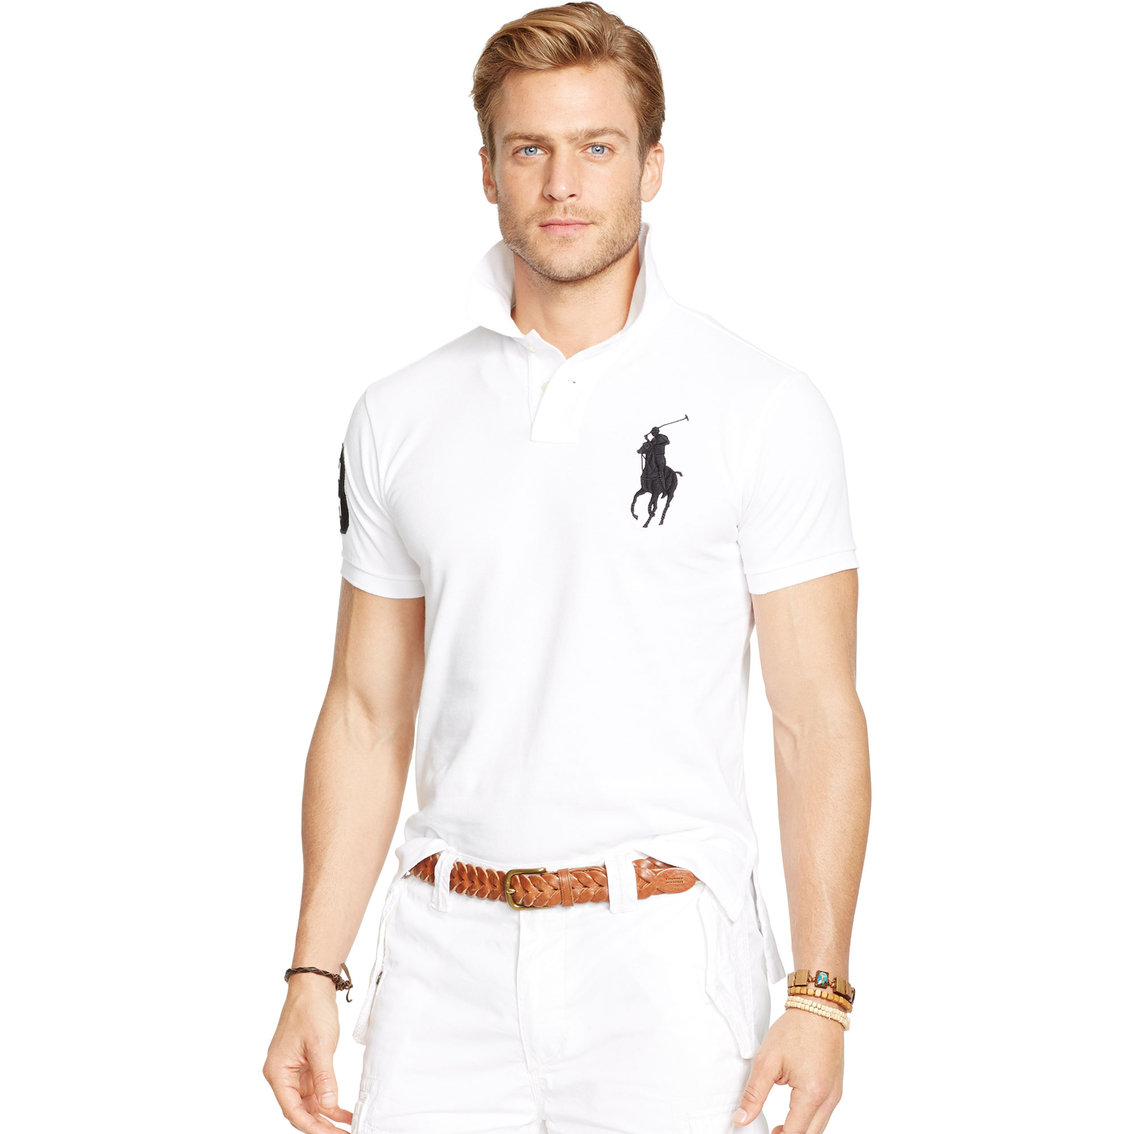 Polo Ralph Lauren Custom Fit Big Pony Mesh Polo Shirt | Shirts \u0026amp; Sweaters